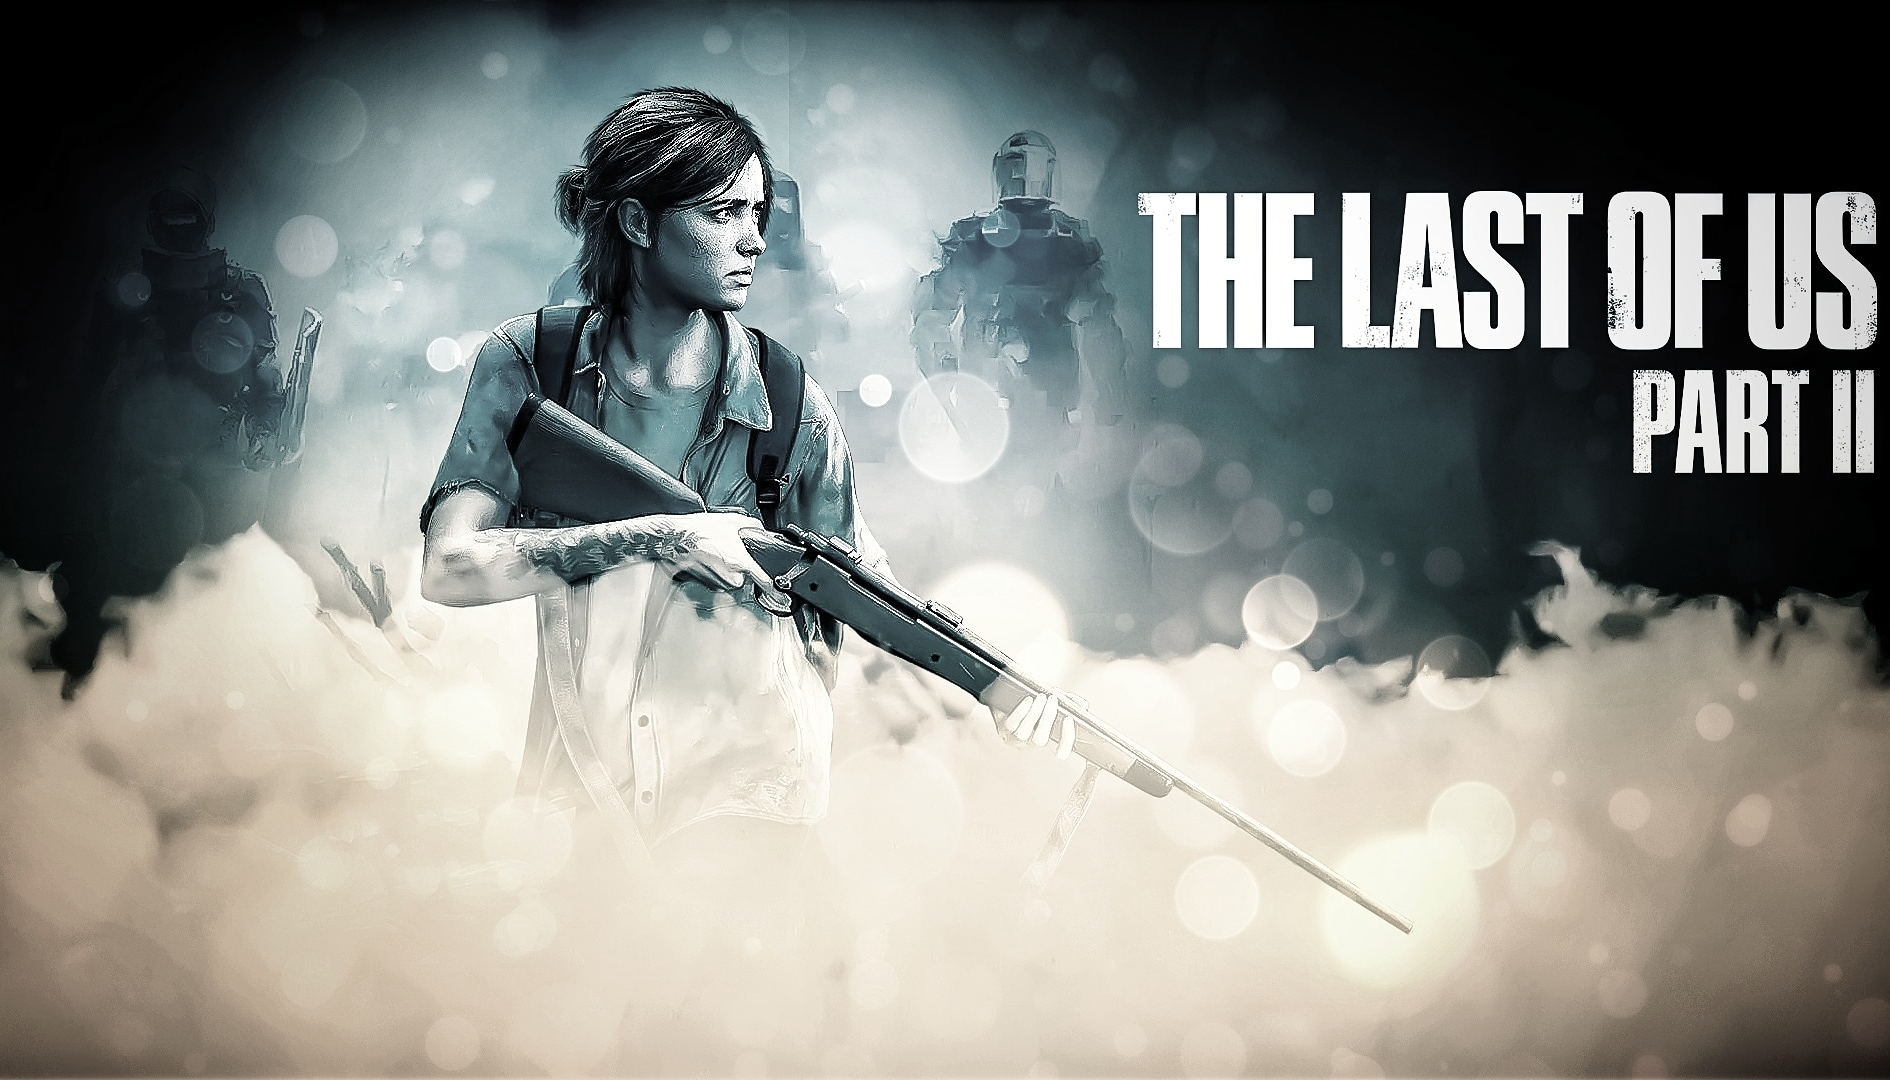 The Last of Us 2: in vendita quattro artwork dedicate al videogioco